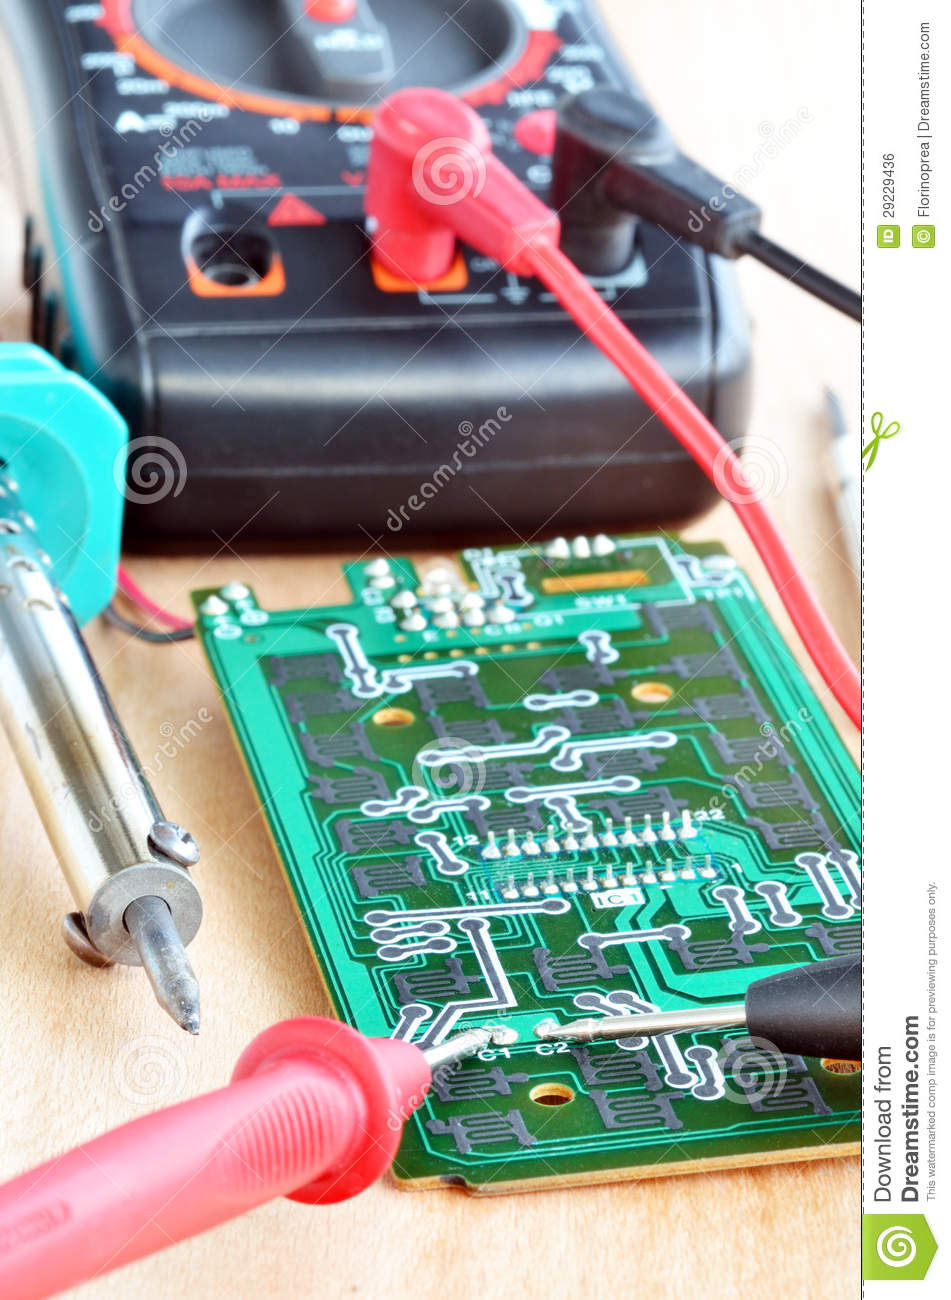 Electronics Tester Jobs : Boar repair yard royalty free stock photo cartoondealer